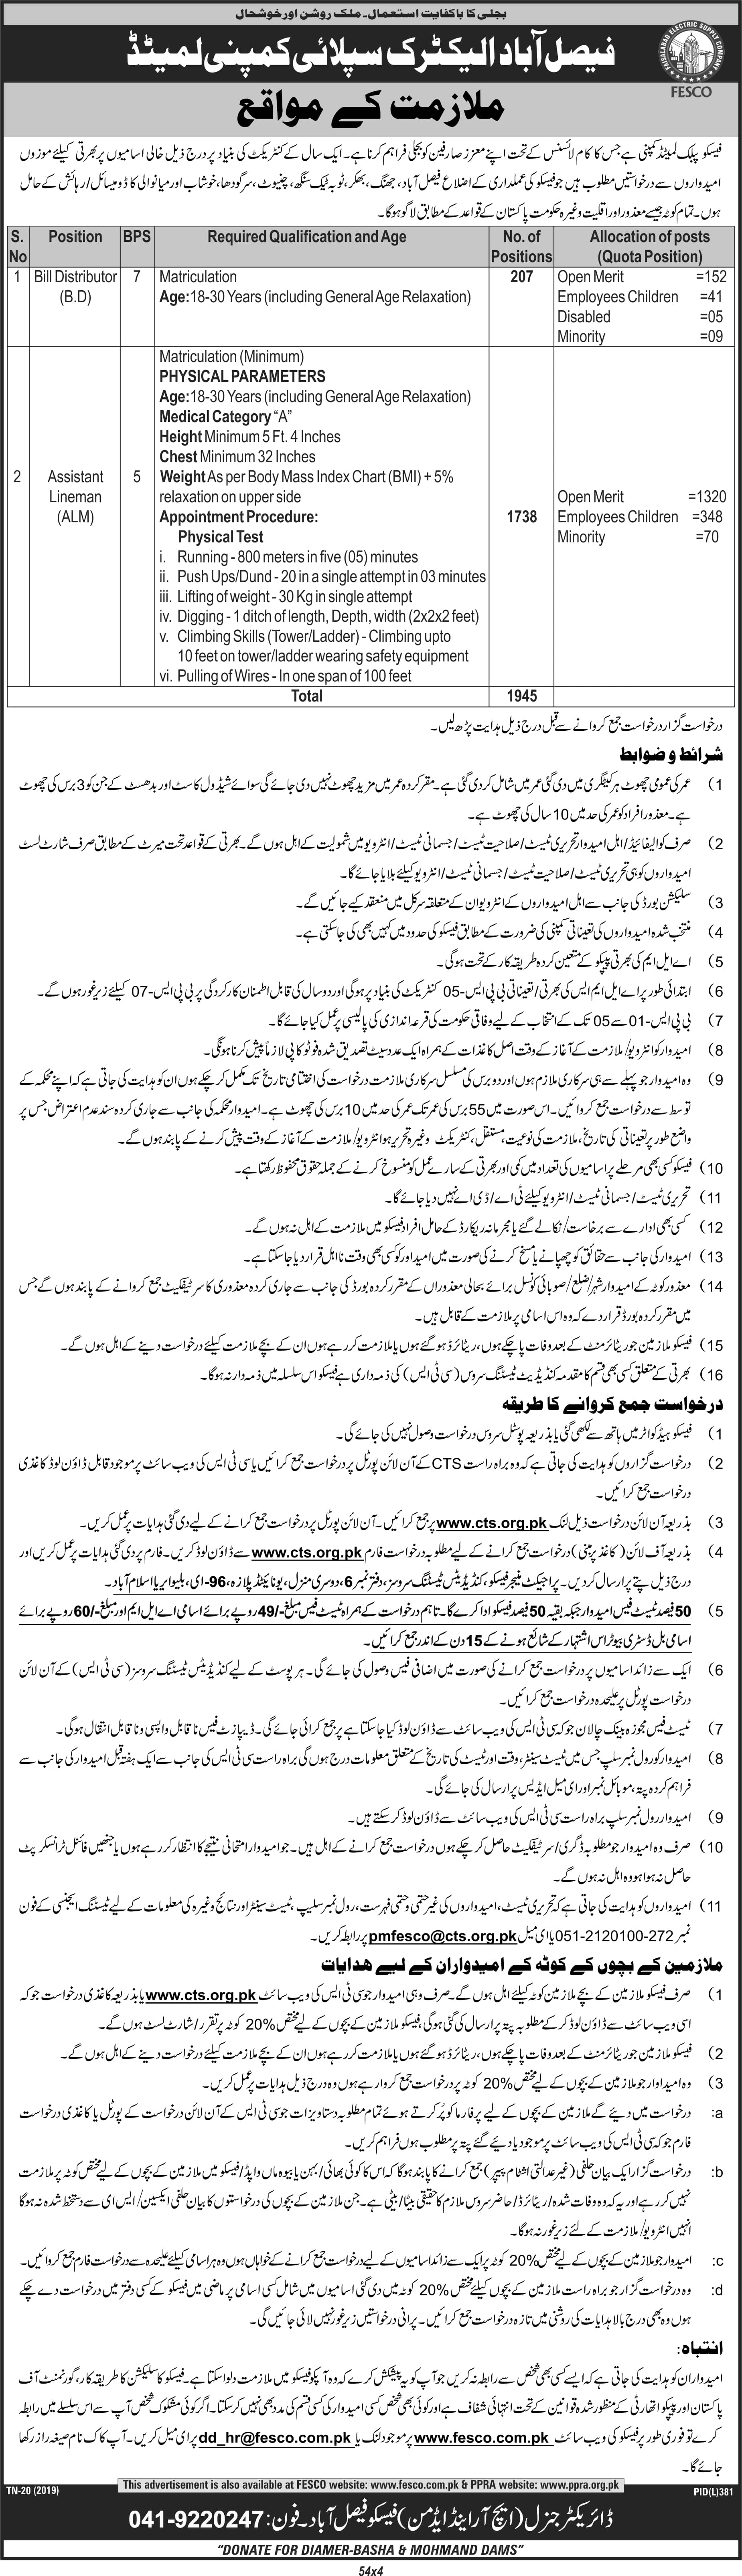 FESCO Faisalabad Electric Company Jobs 2019 CTS Application Form